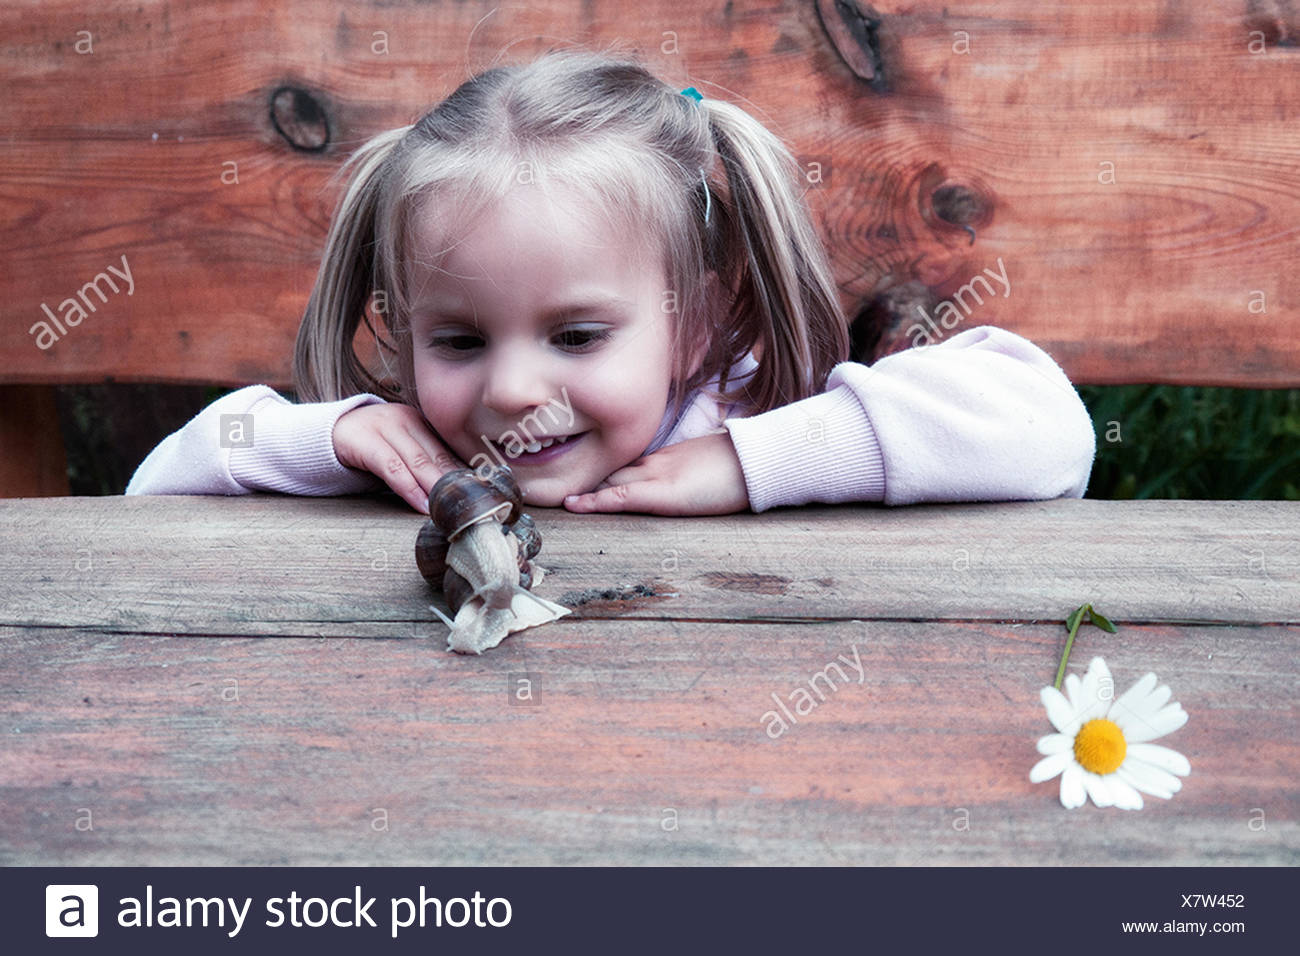 Girl looking at a snail - Stock Image